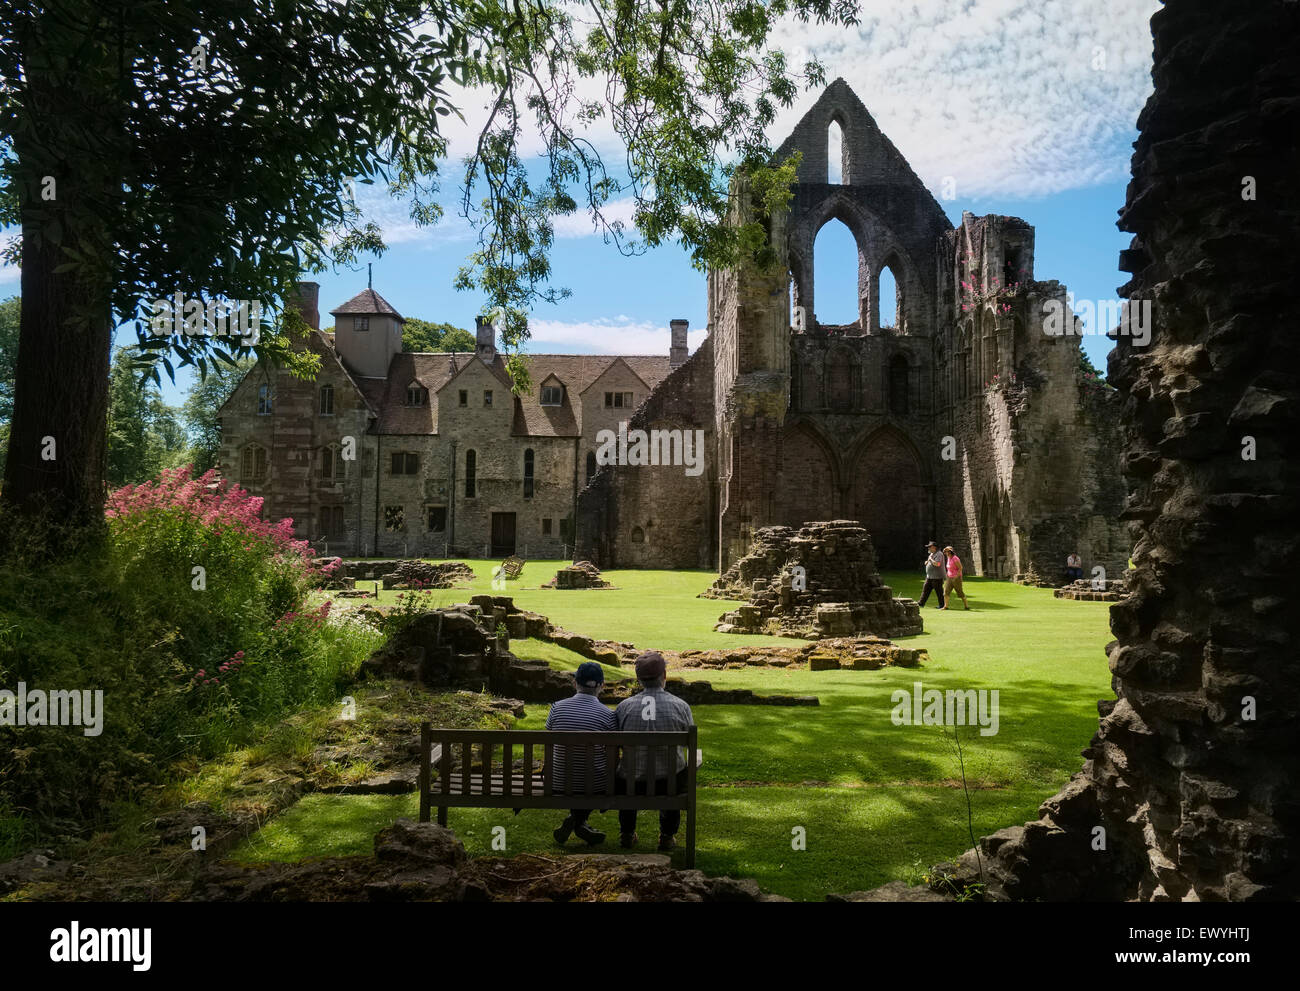 The ruins of Wenlock Priory at Much Wenlock, Shropshire, England under the care of English Heritage. - Stock Image